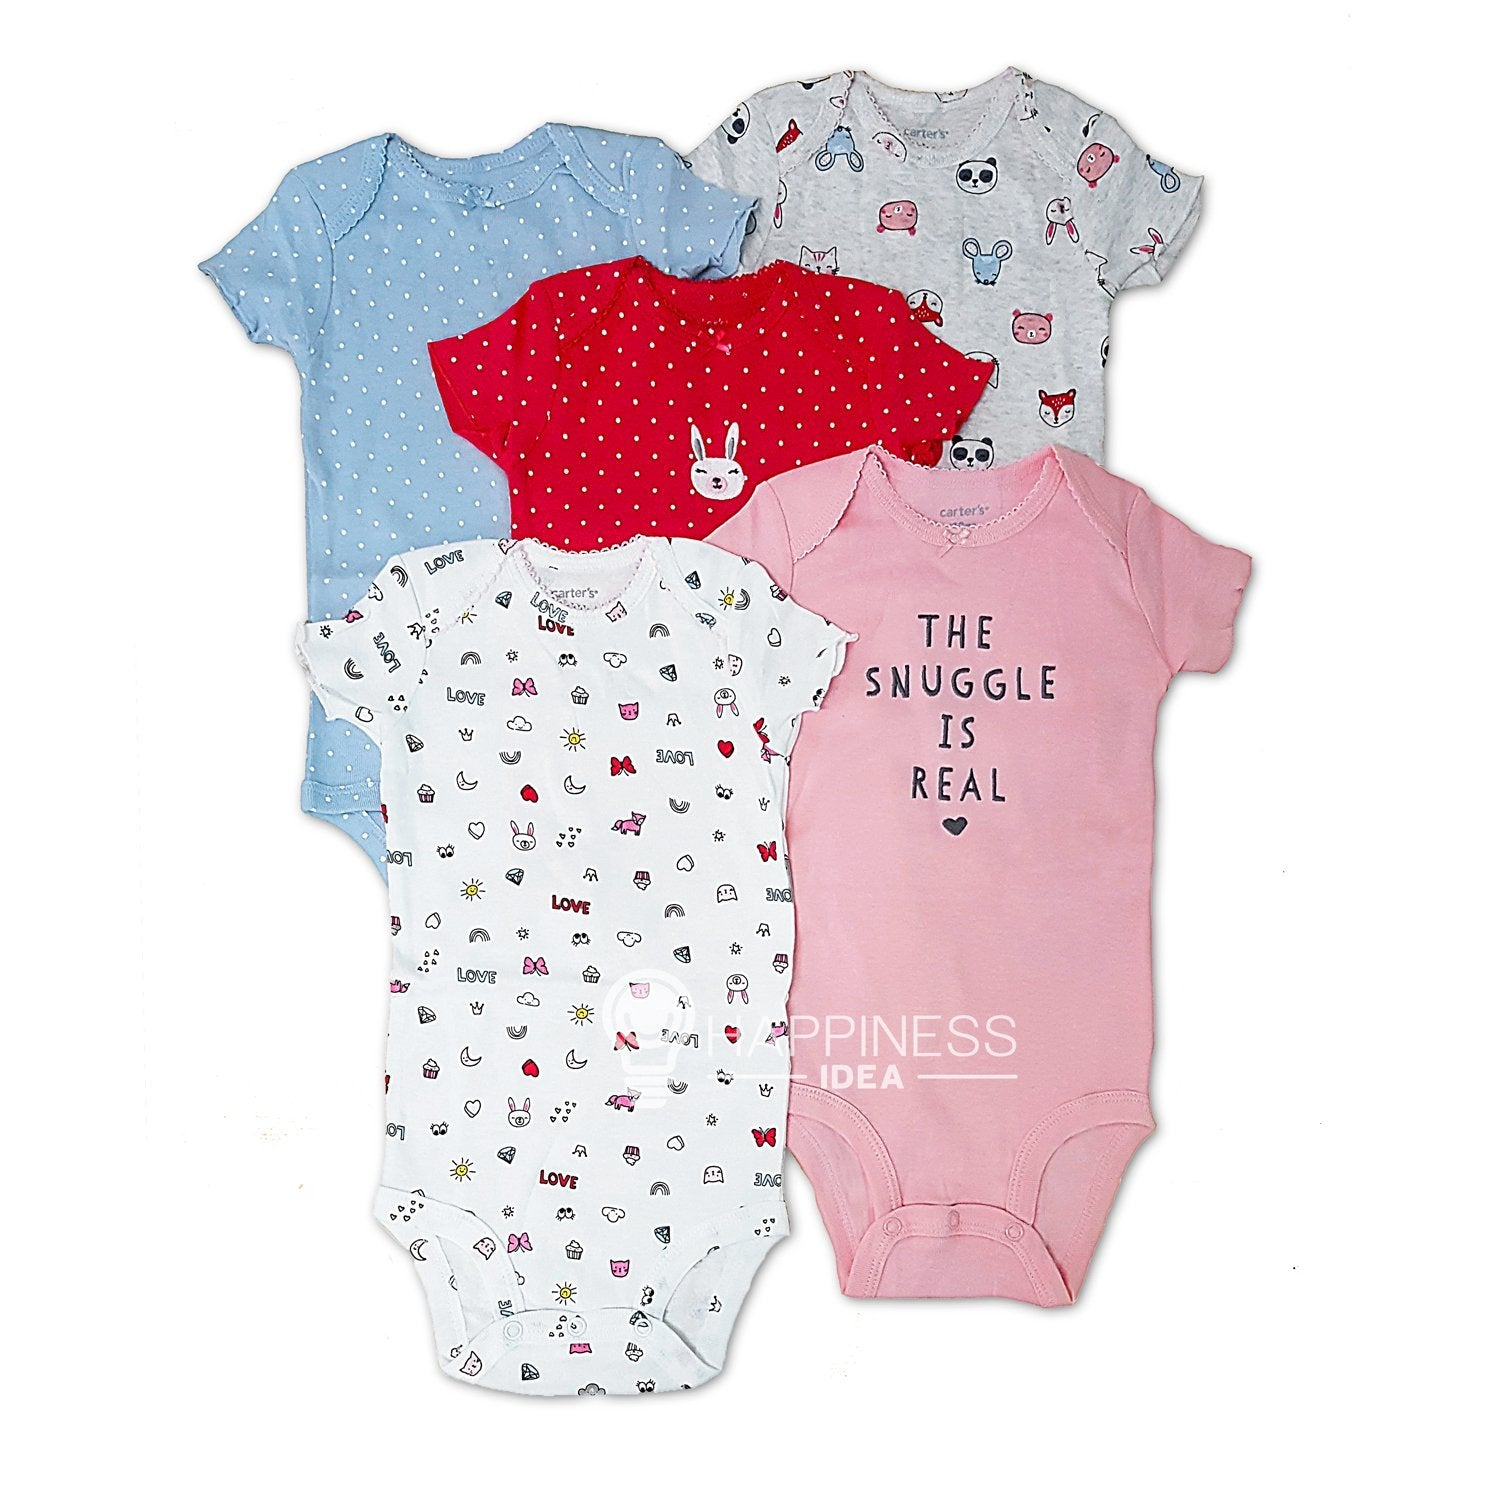 Carter's 5-Pack Basic Original Bodysuits - Happiness Idea